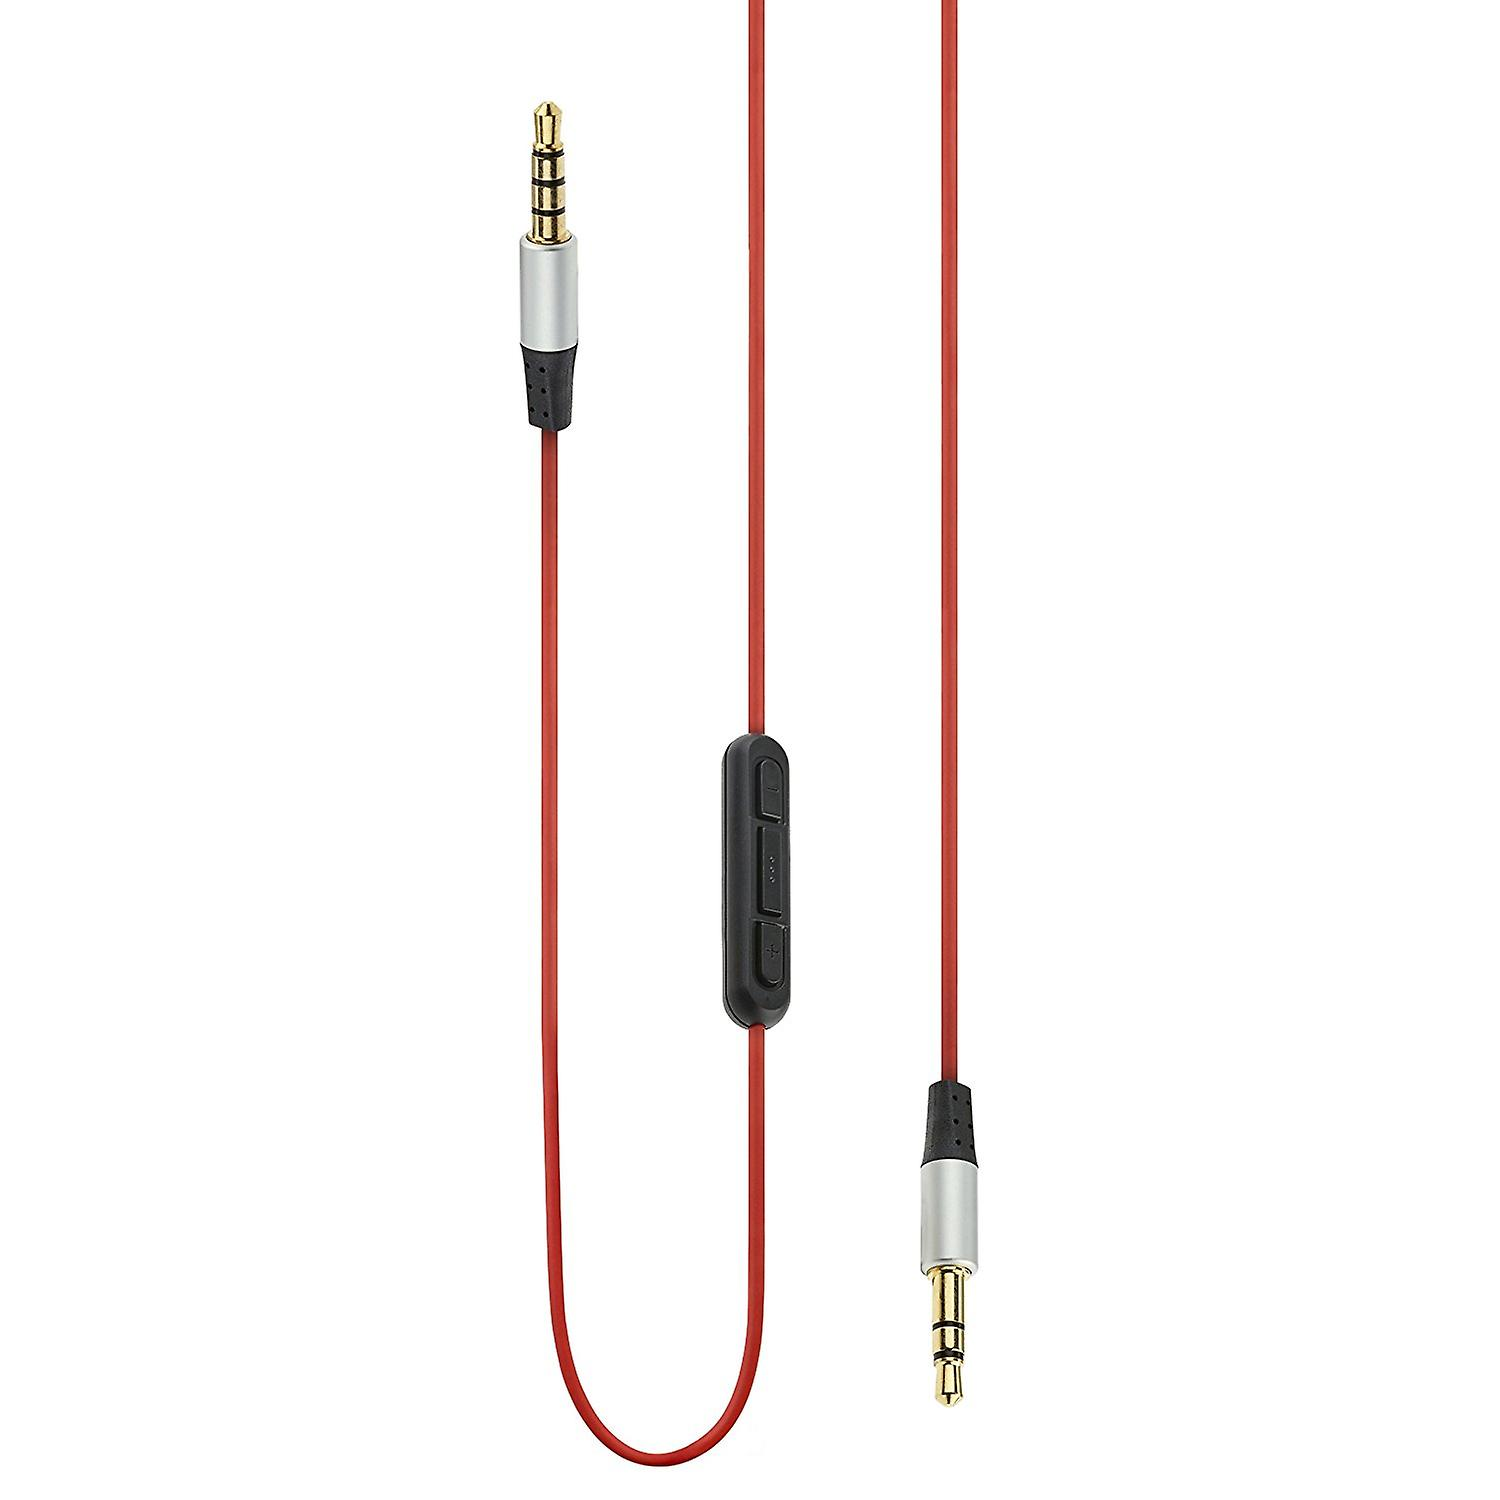 Beats 1.2m Replacement Audio Cable for Beats Solo HD & Studio 2.0